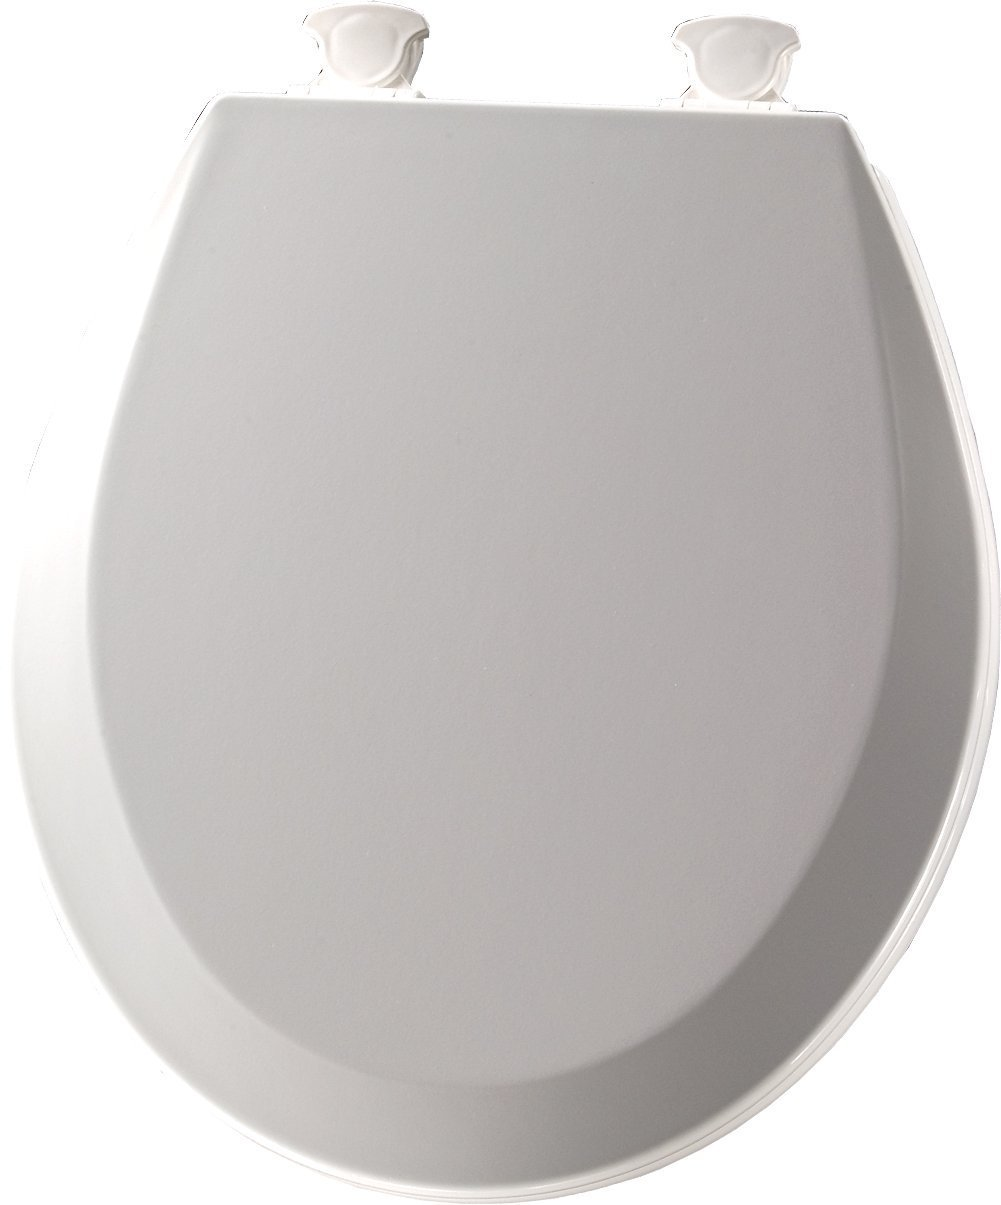 Bemis 500EC 062 Molded Wood Round Toilet Seat With Easy Clean & Change Hinge, Ice Grey